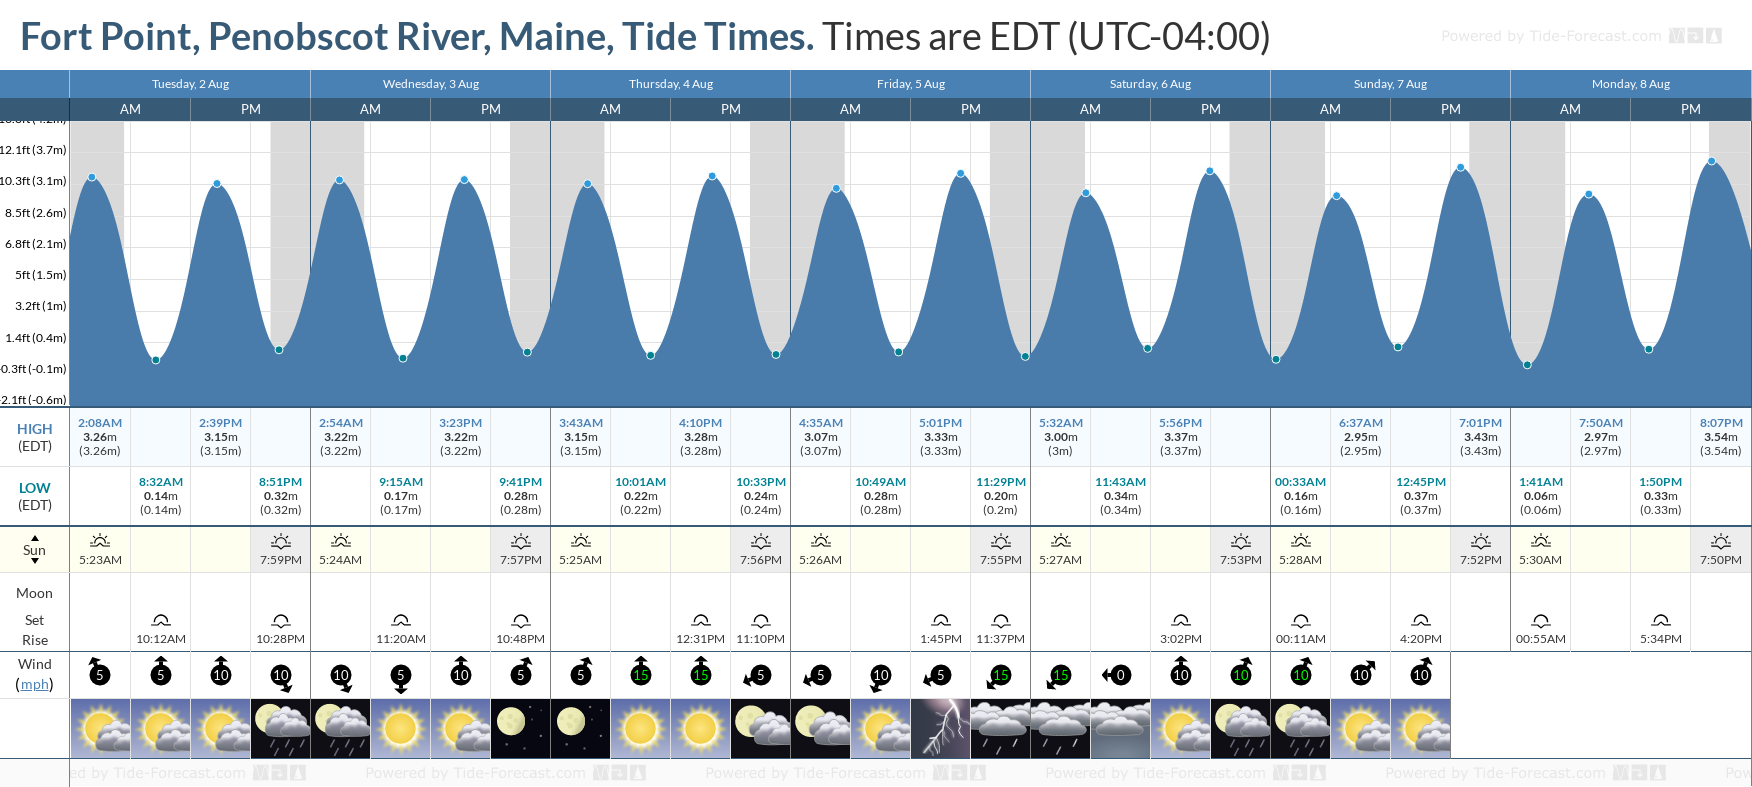 Fort Point, Penobscot River, Maine Tide Chart including high and low tide tide times for the next 7 days